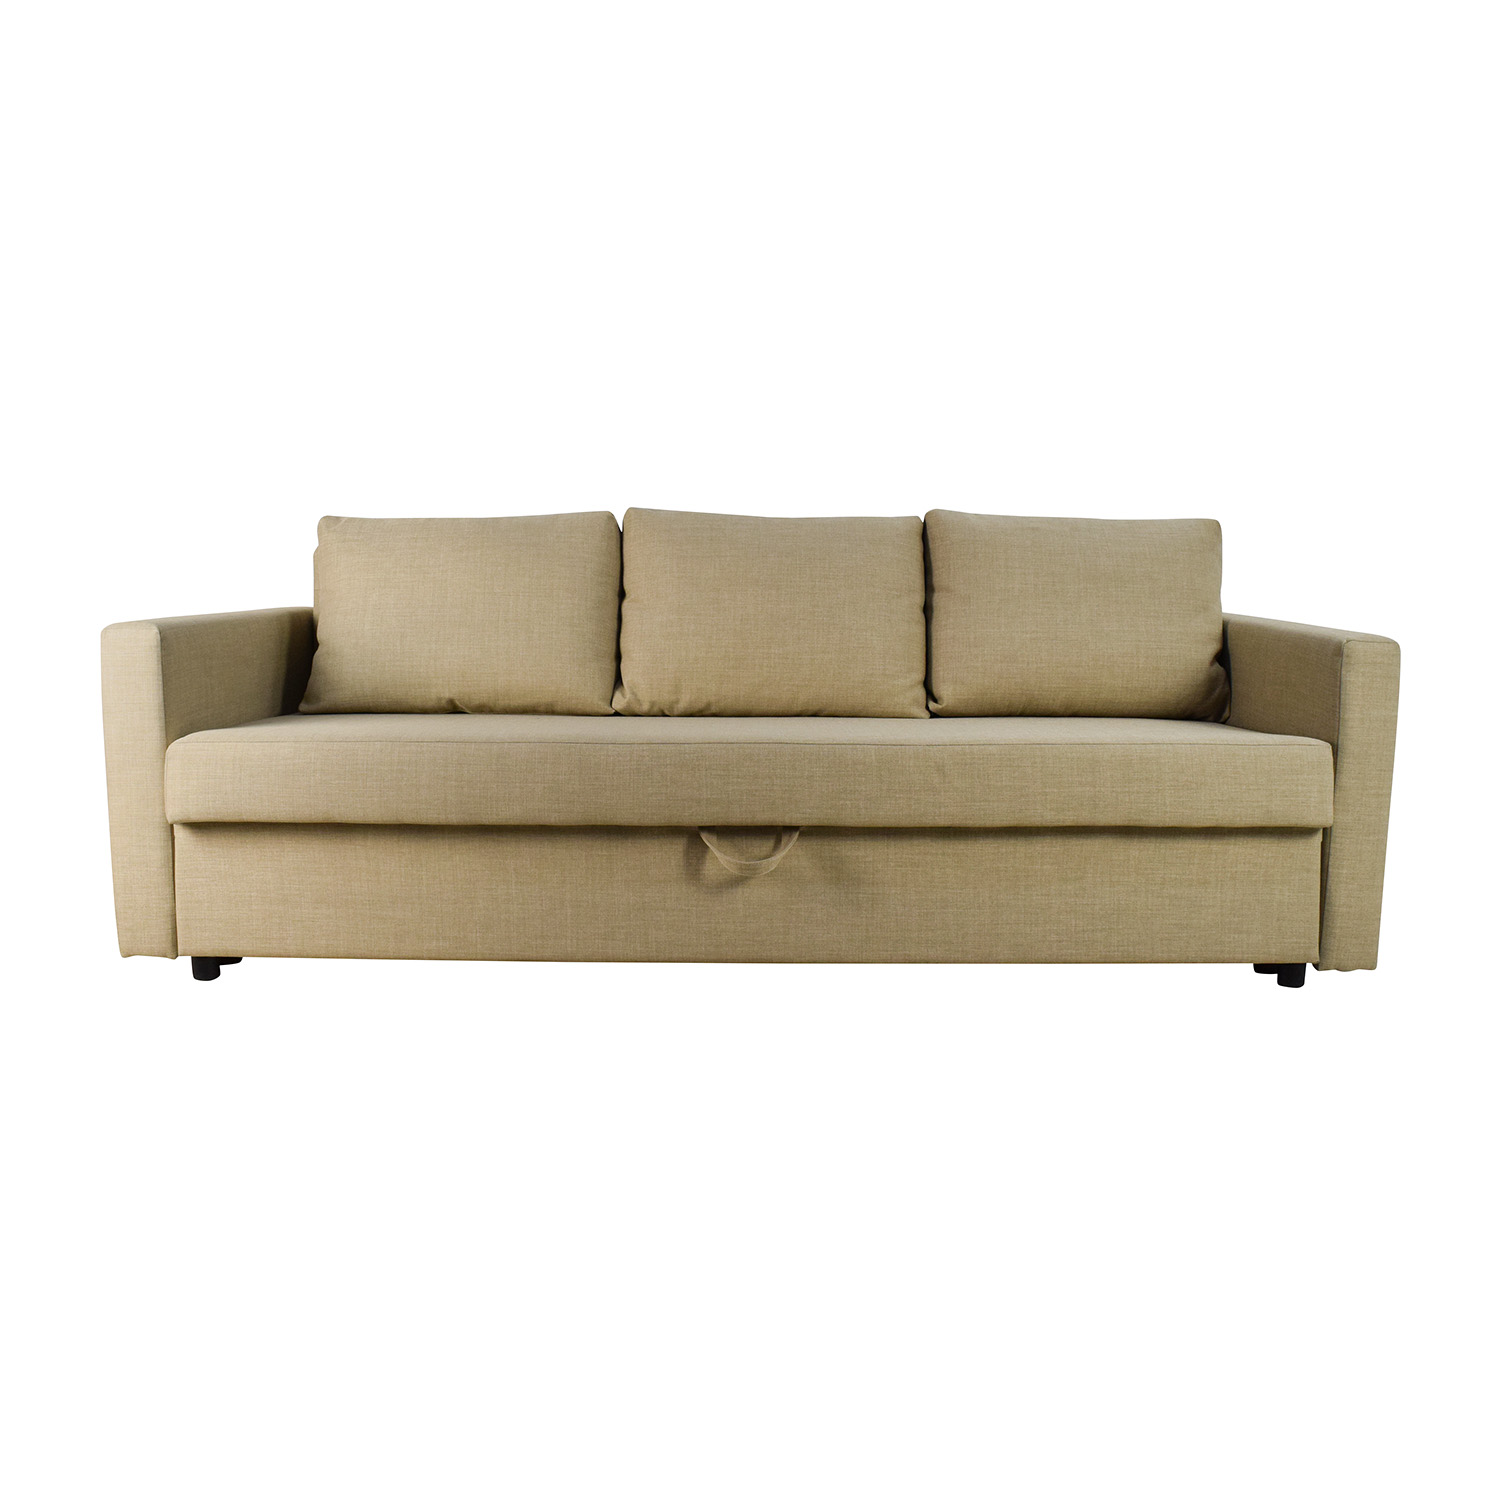 Bettsofa Ikea Friheten 62 Off Ikea Friheten Sleeper Sofa With Storage Sofas